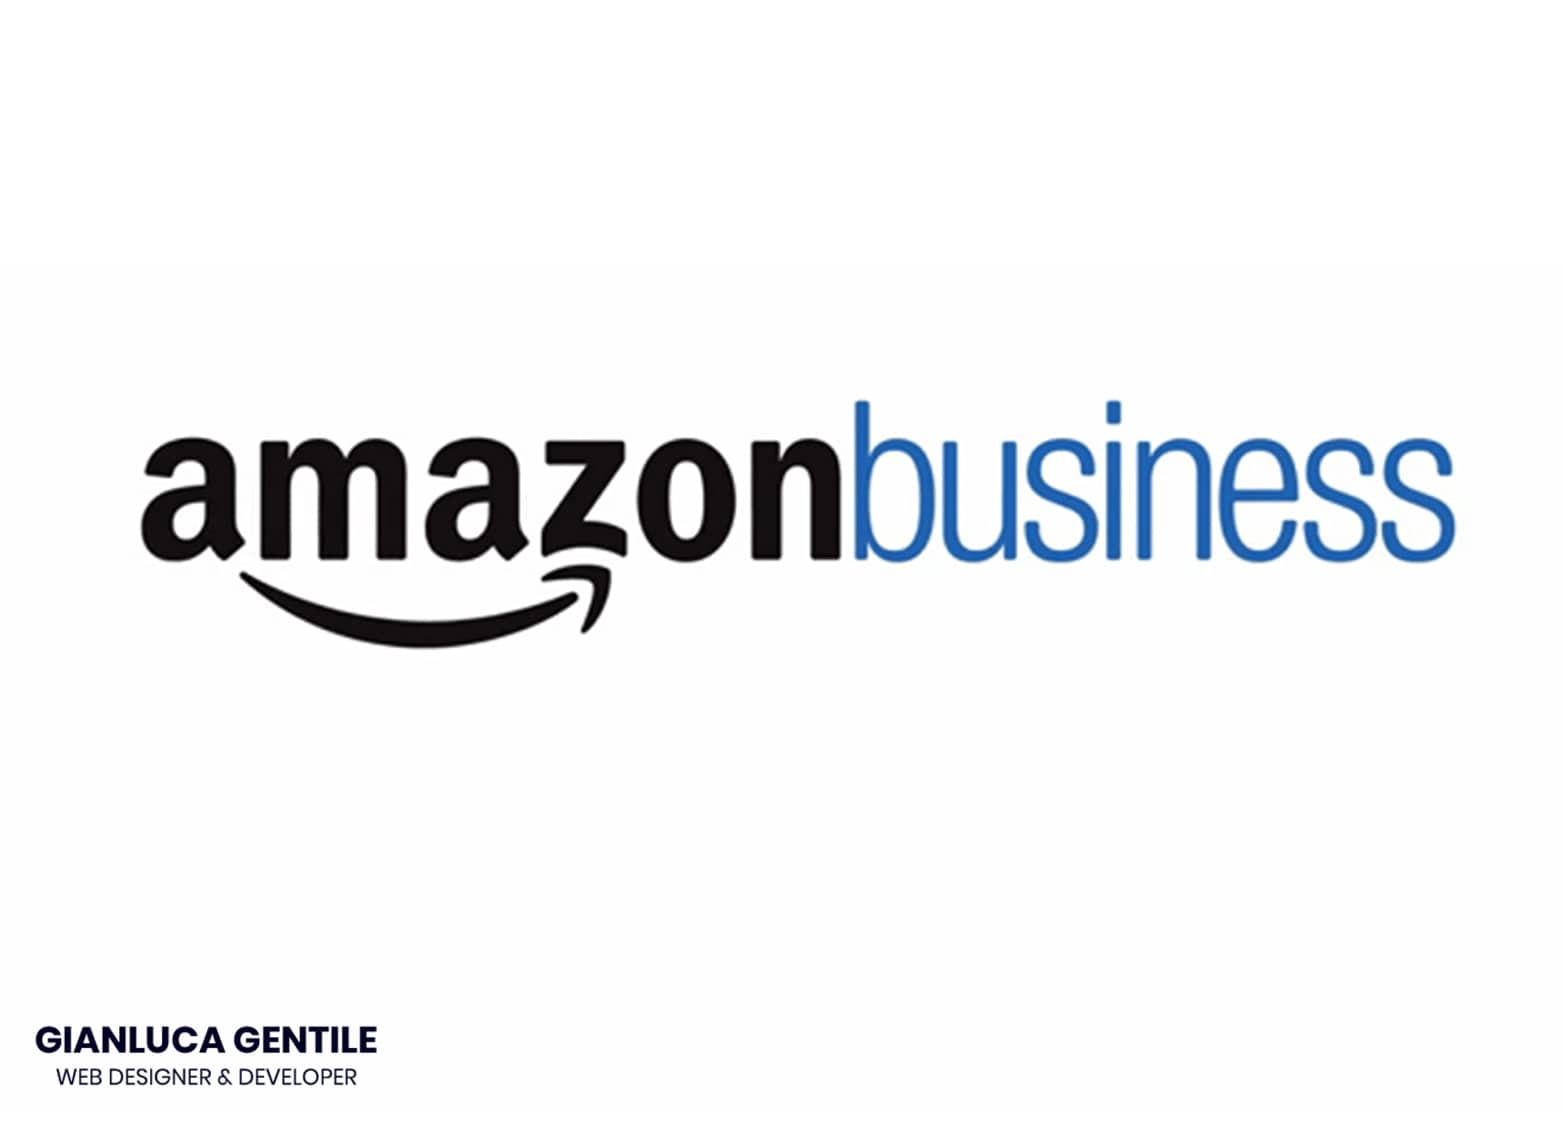 amazon business - Amazon Business Italia - Nasce Amazon Business